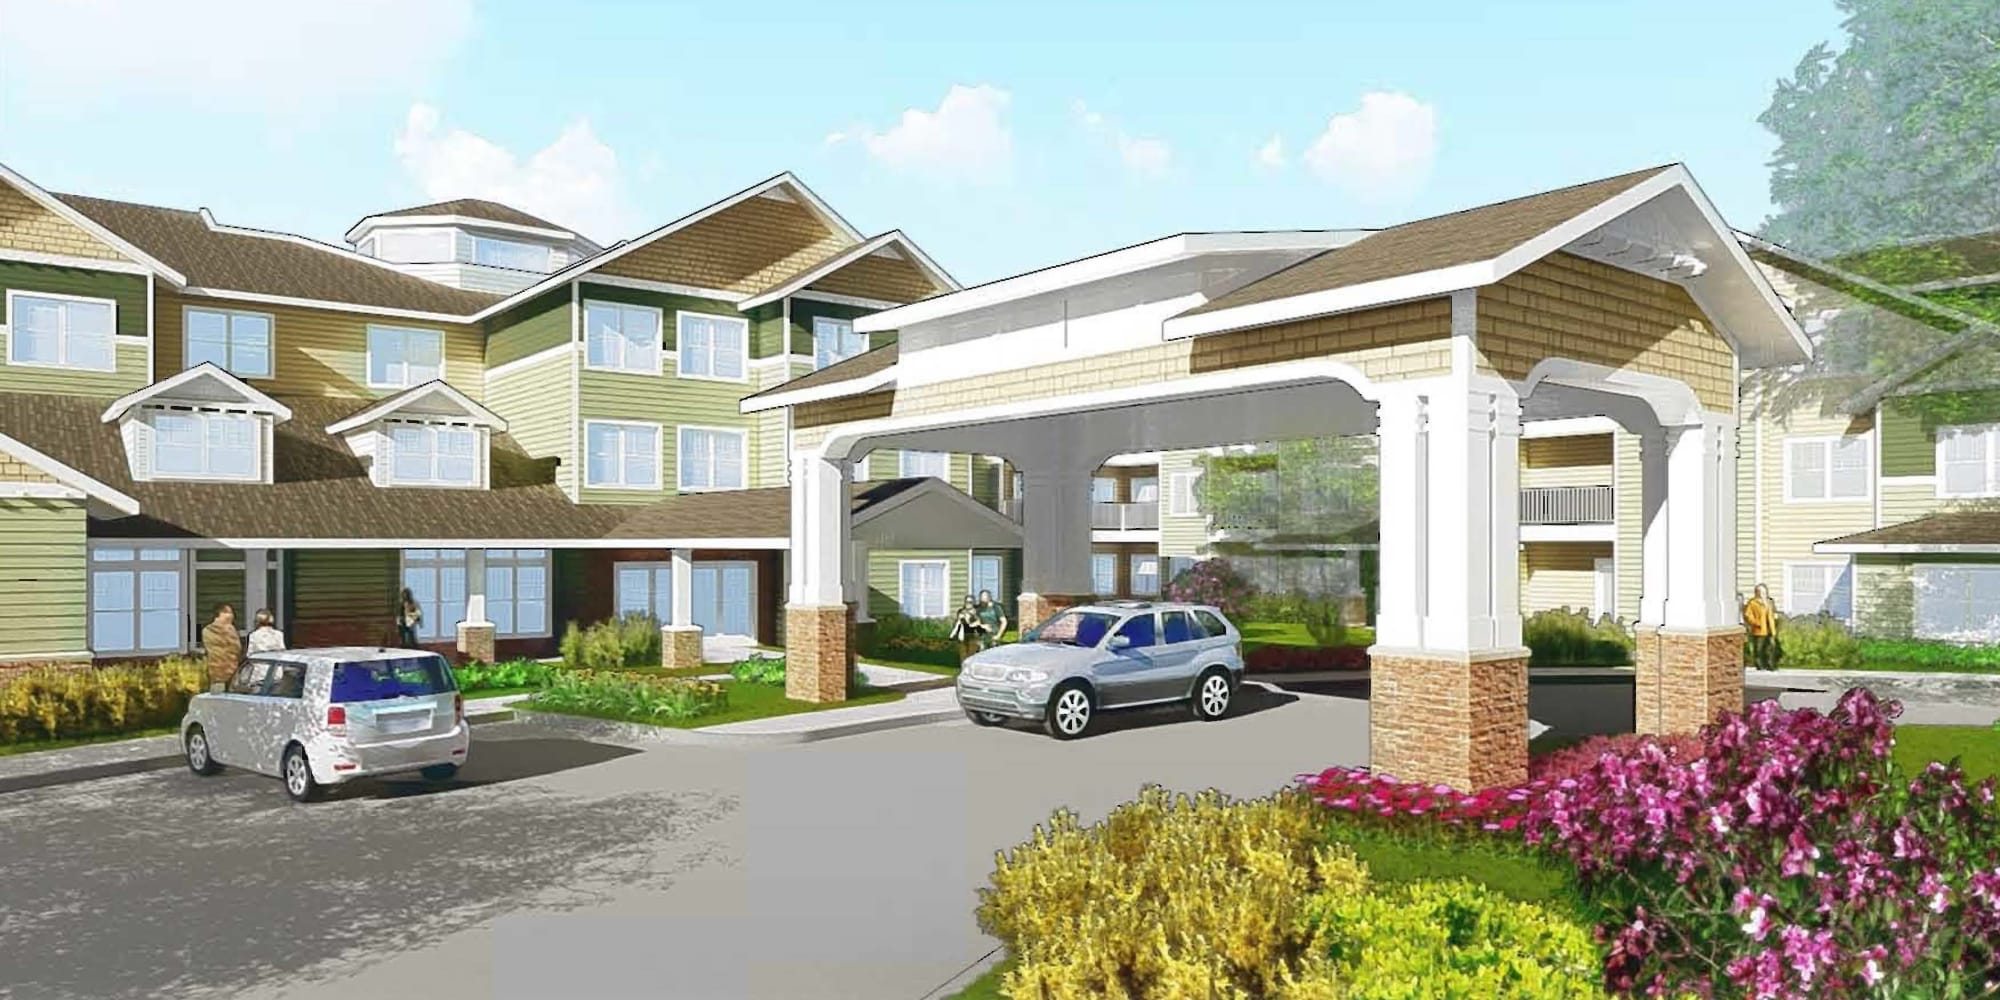 Rendering for Kennedy Meadows Gracious Retirement Living in North Billerica, Massachusetts